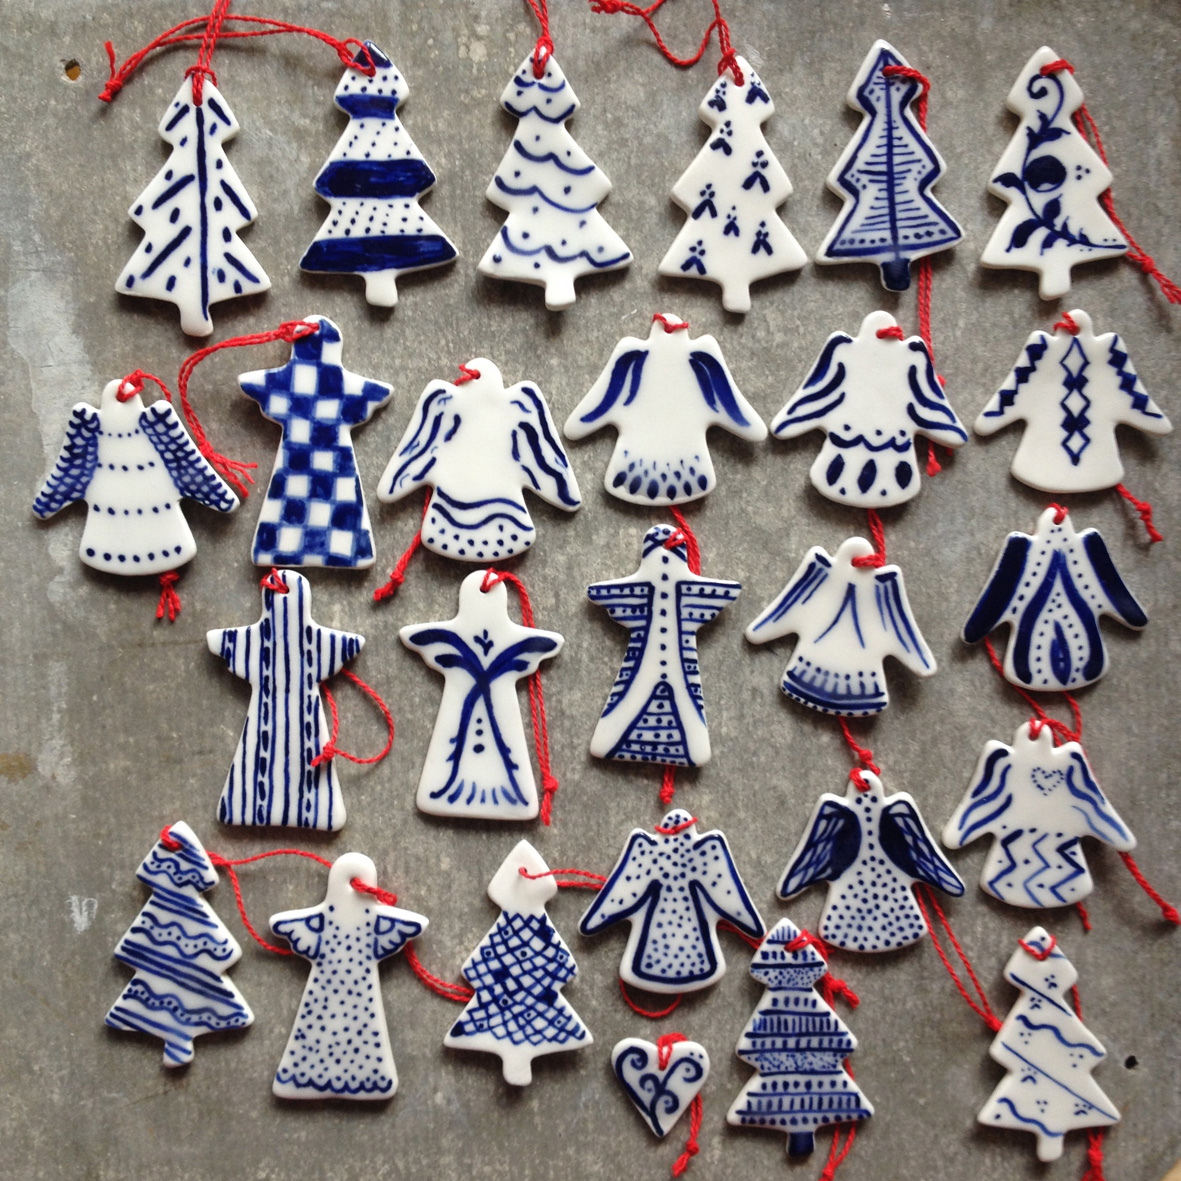 painted-porcelain-christmas-decorations-12